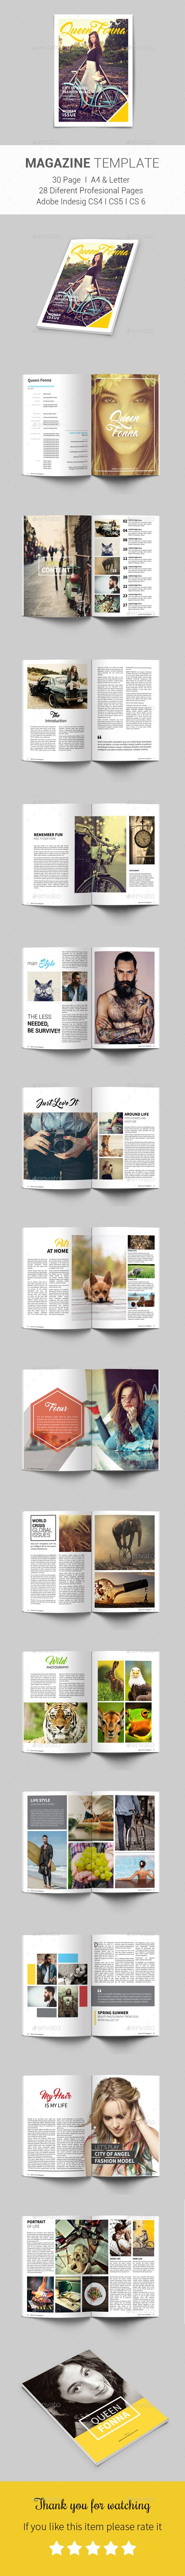 Multipurpose Magazine — InDesign INDD #hipster magazine #minimilist indesign template • Download ➝ https://graphicriver.net/item/multipurpose-magazine/19014303?ref=pxcr